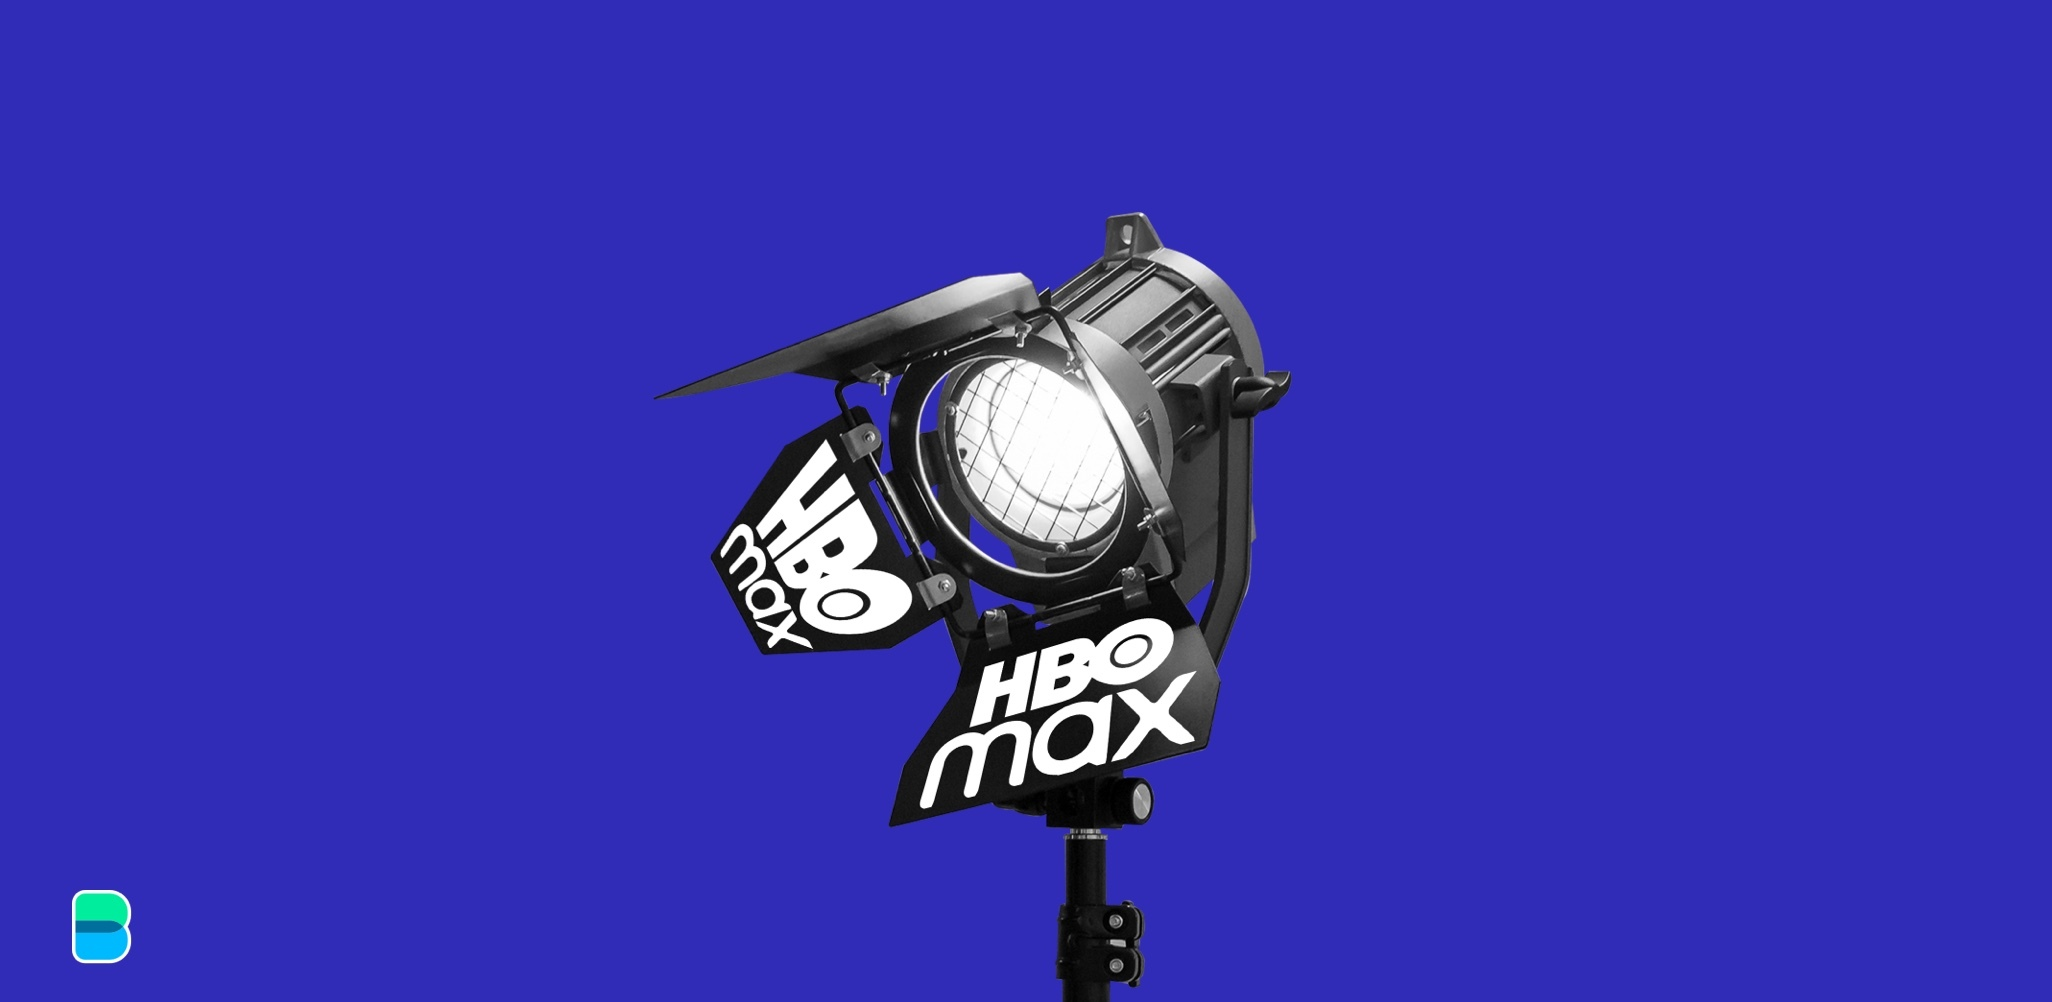 HBO Max is making a comeback to the podium